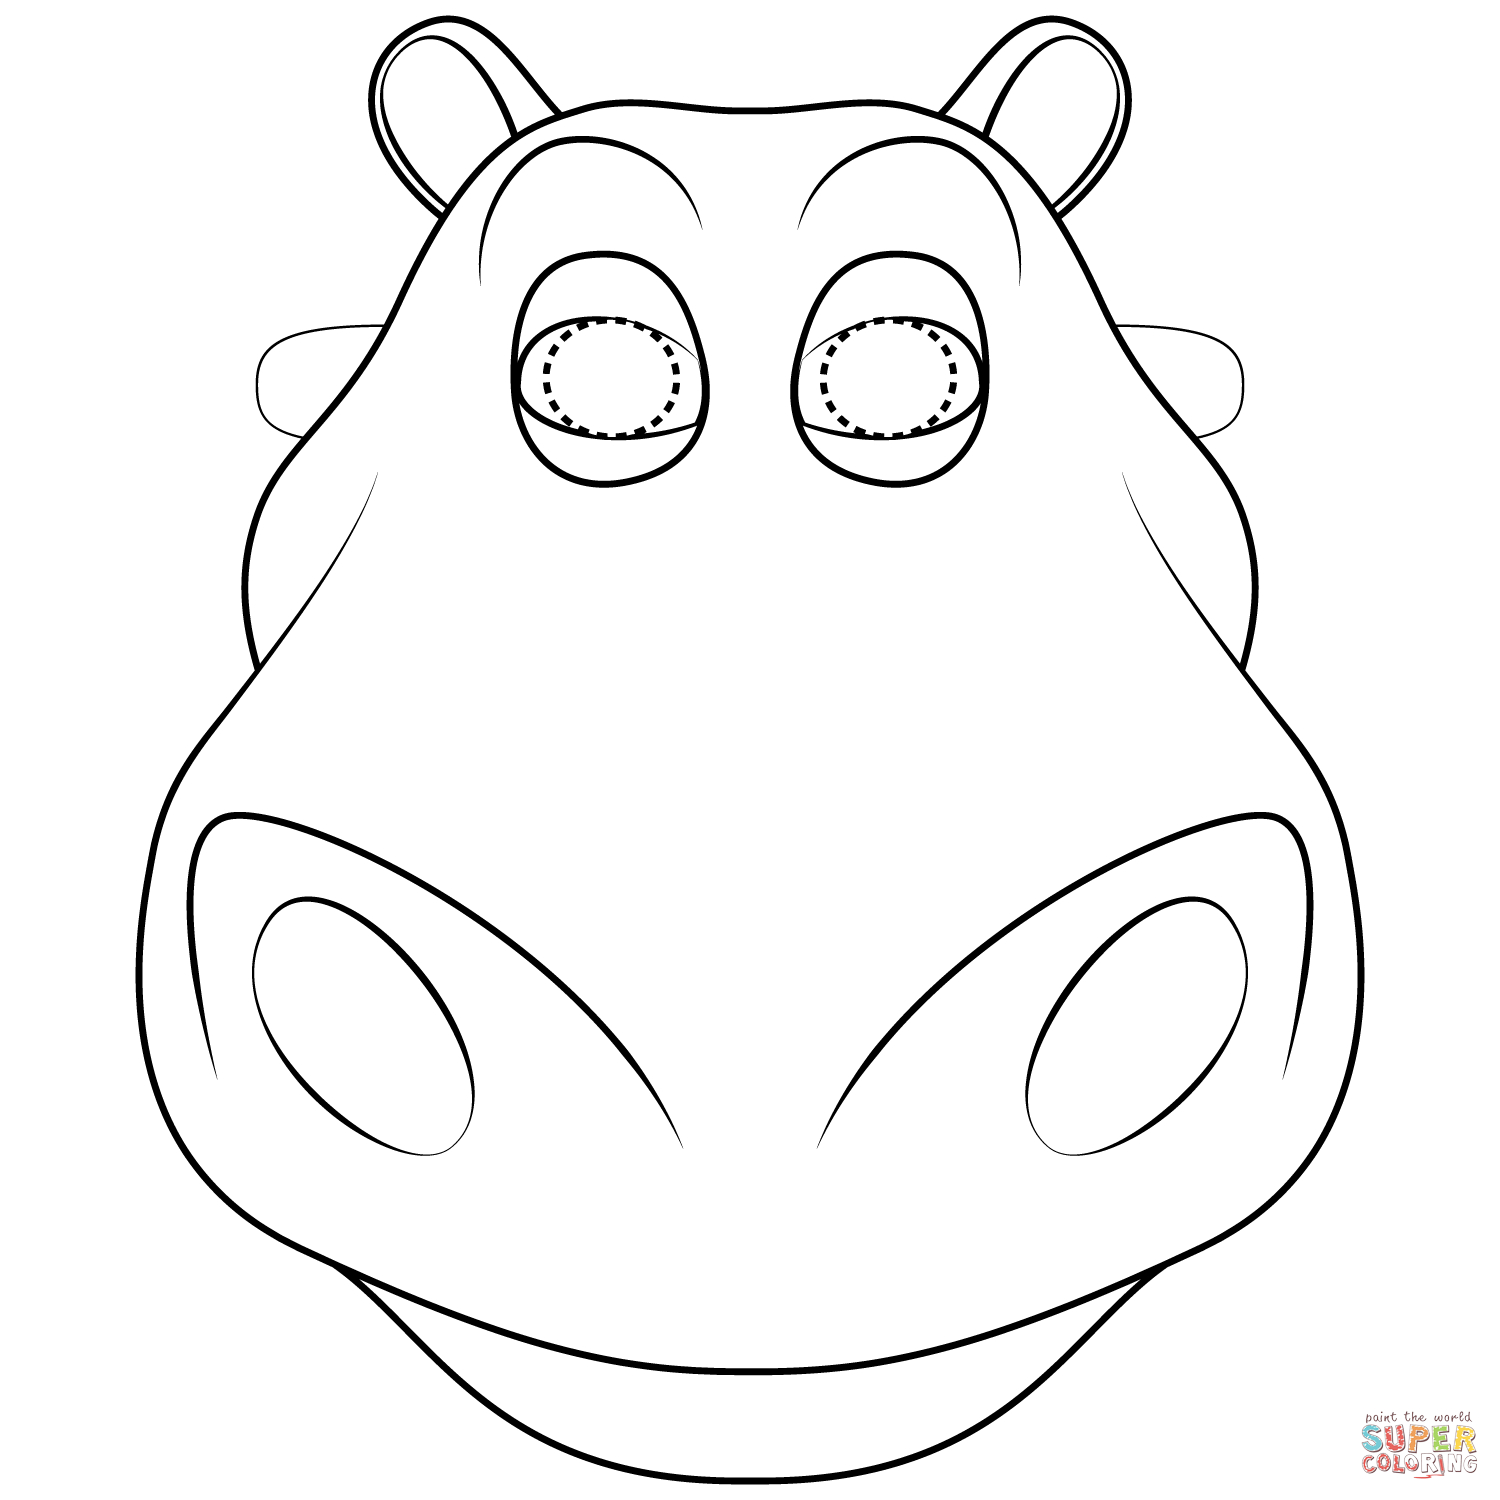 Hippo Mask Coloring Page | Free Printable Coloring Pages - Free Printable Hippo Mask